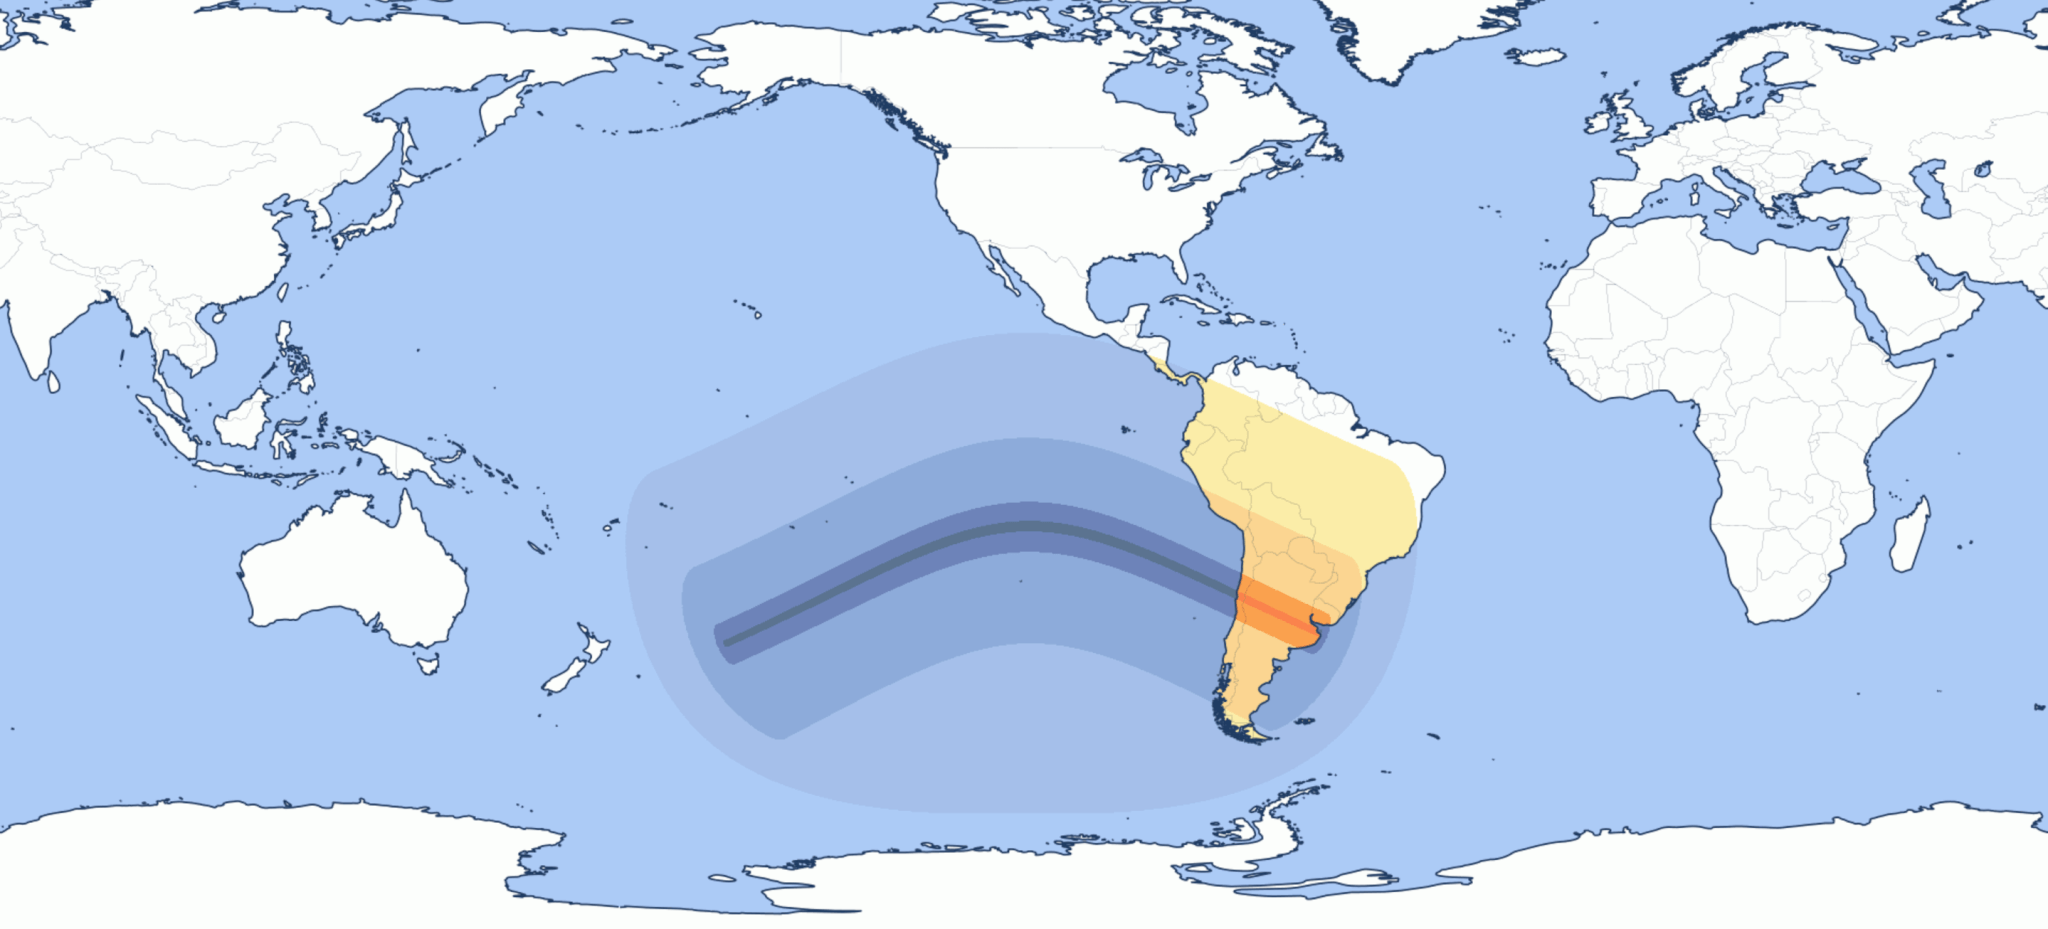 Total solar eclipse Buenos Aires 2019 July 2